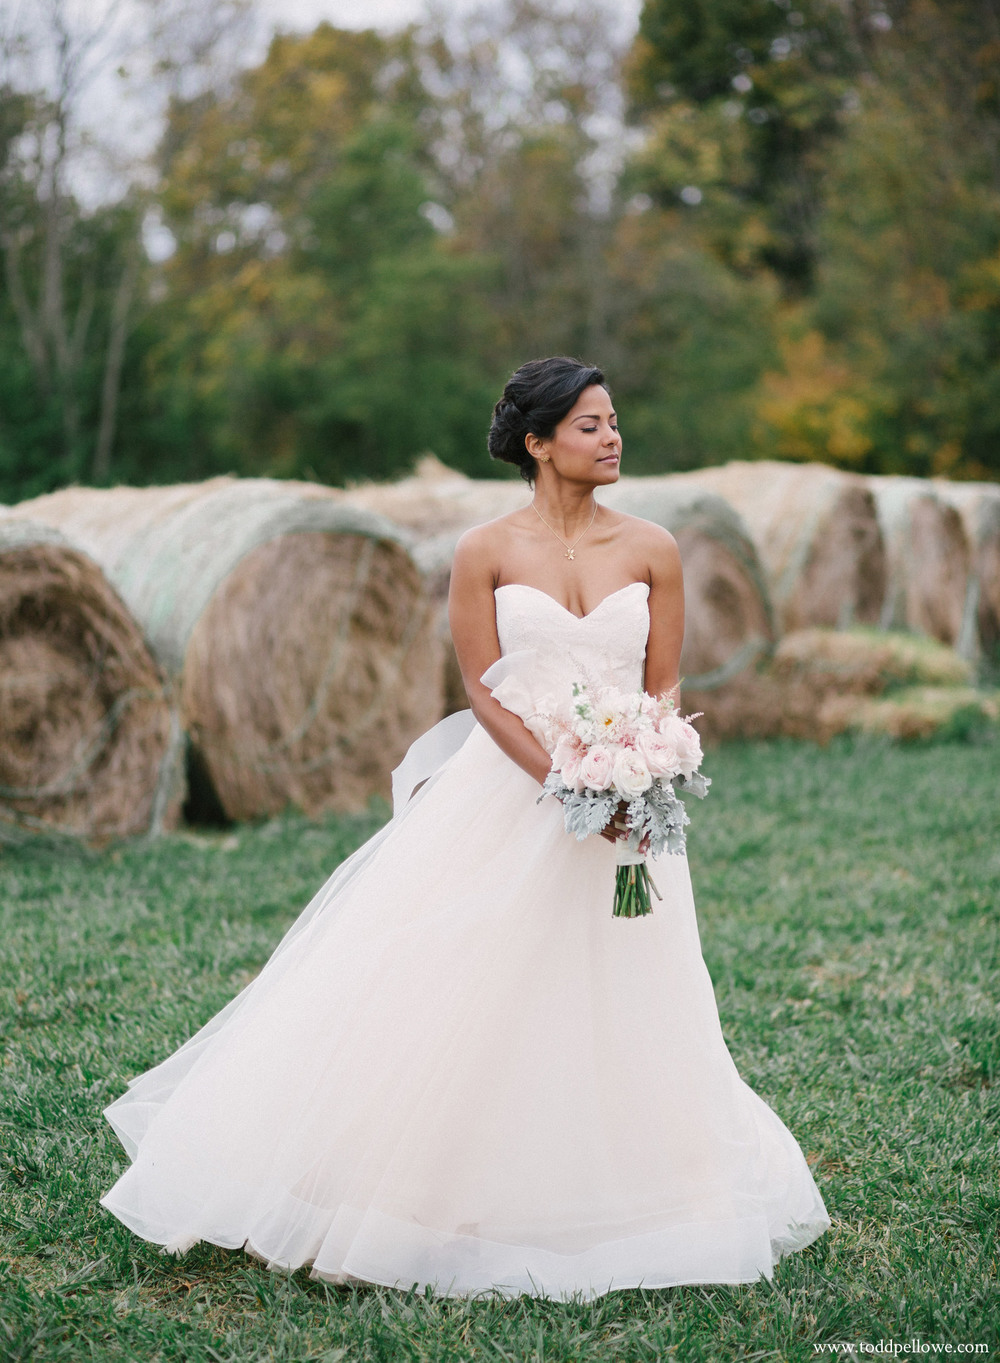 11-foxhollow-farm-kentucky-wedding-127.jpg